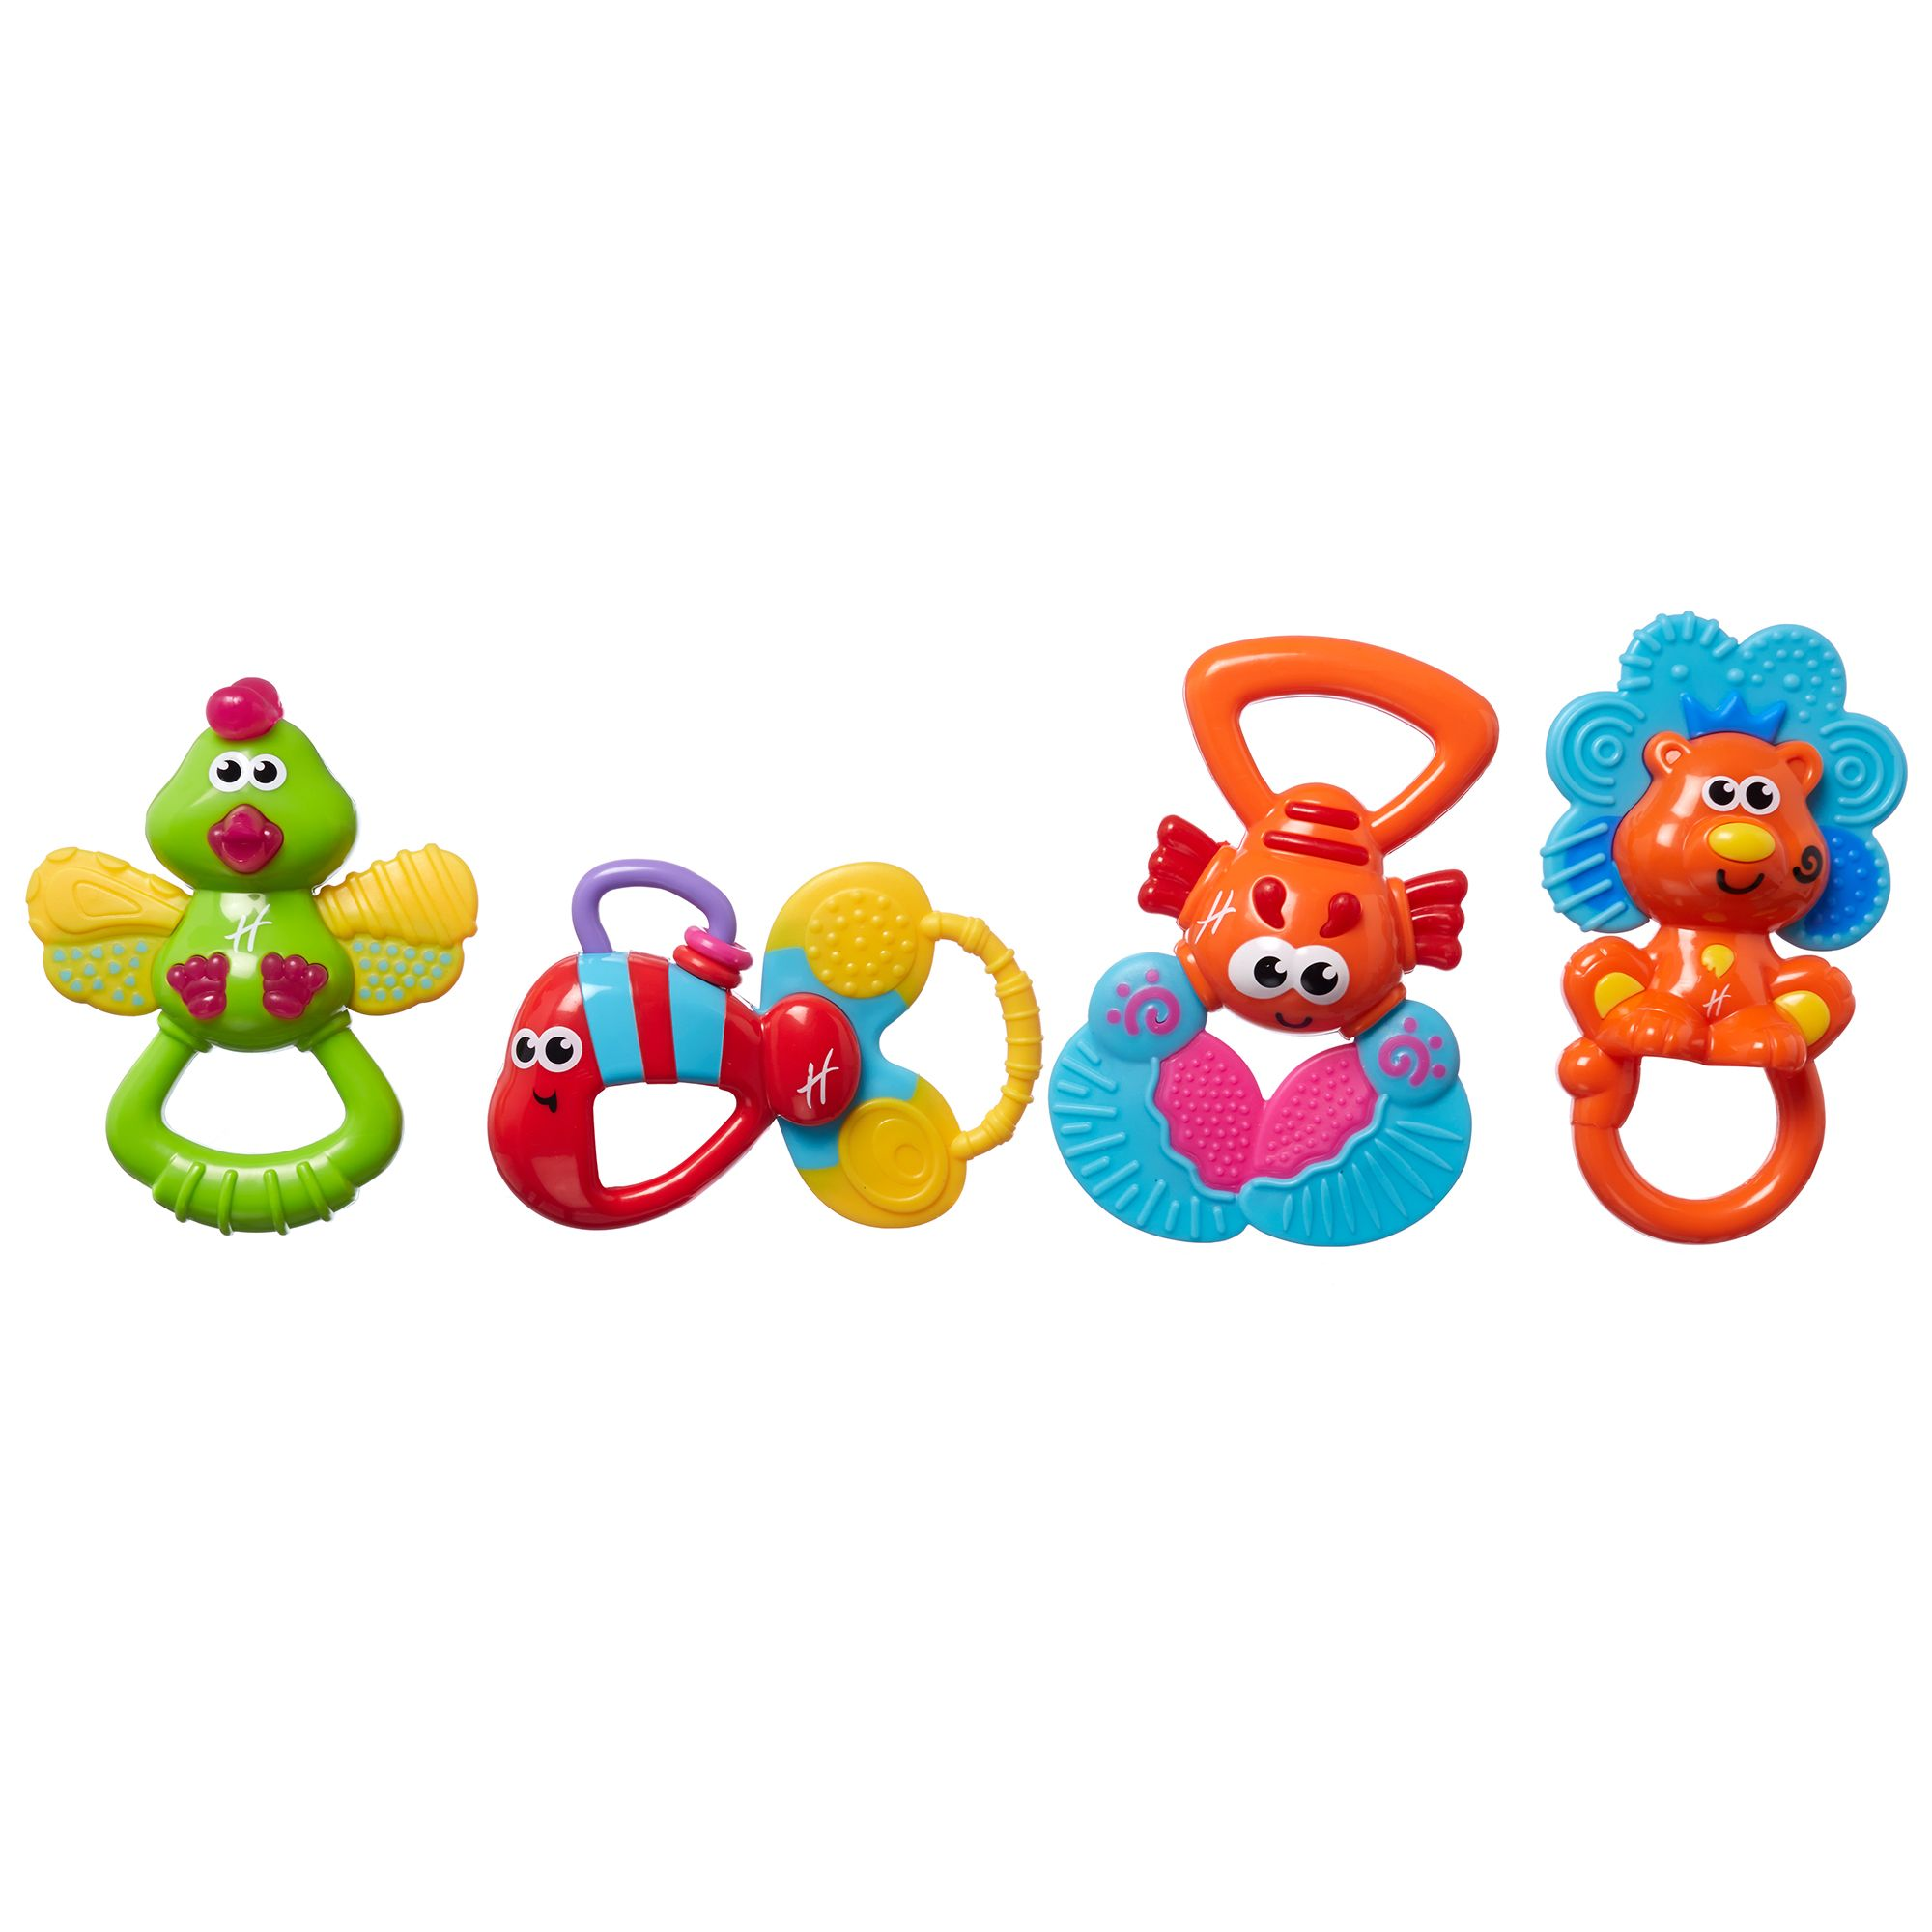 Hamleys Teething Tots Assortment